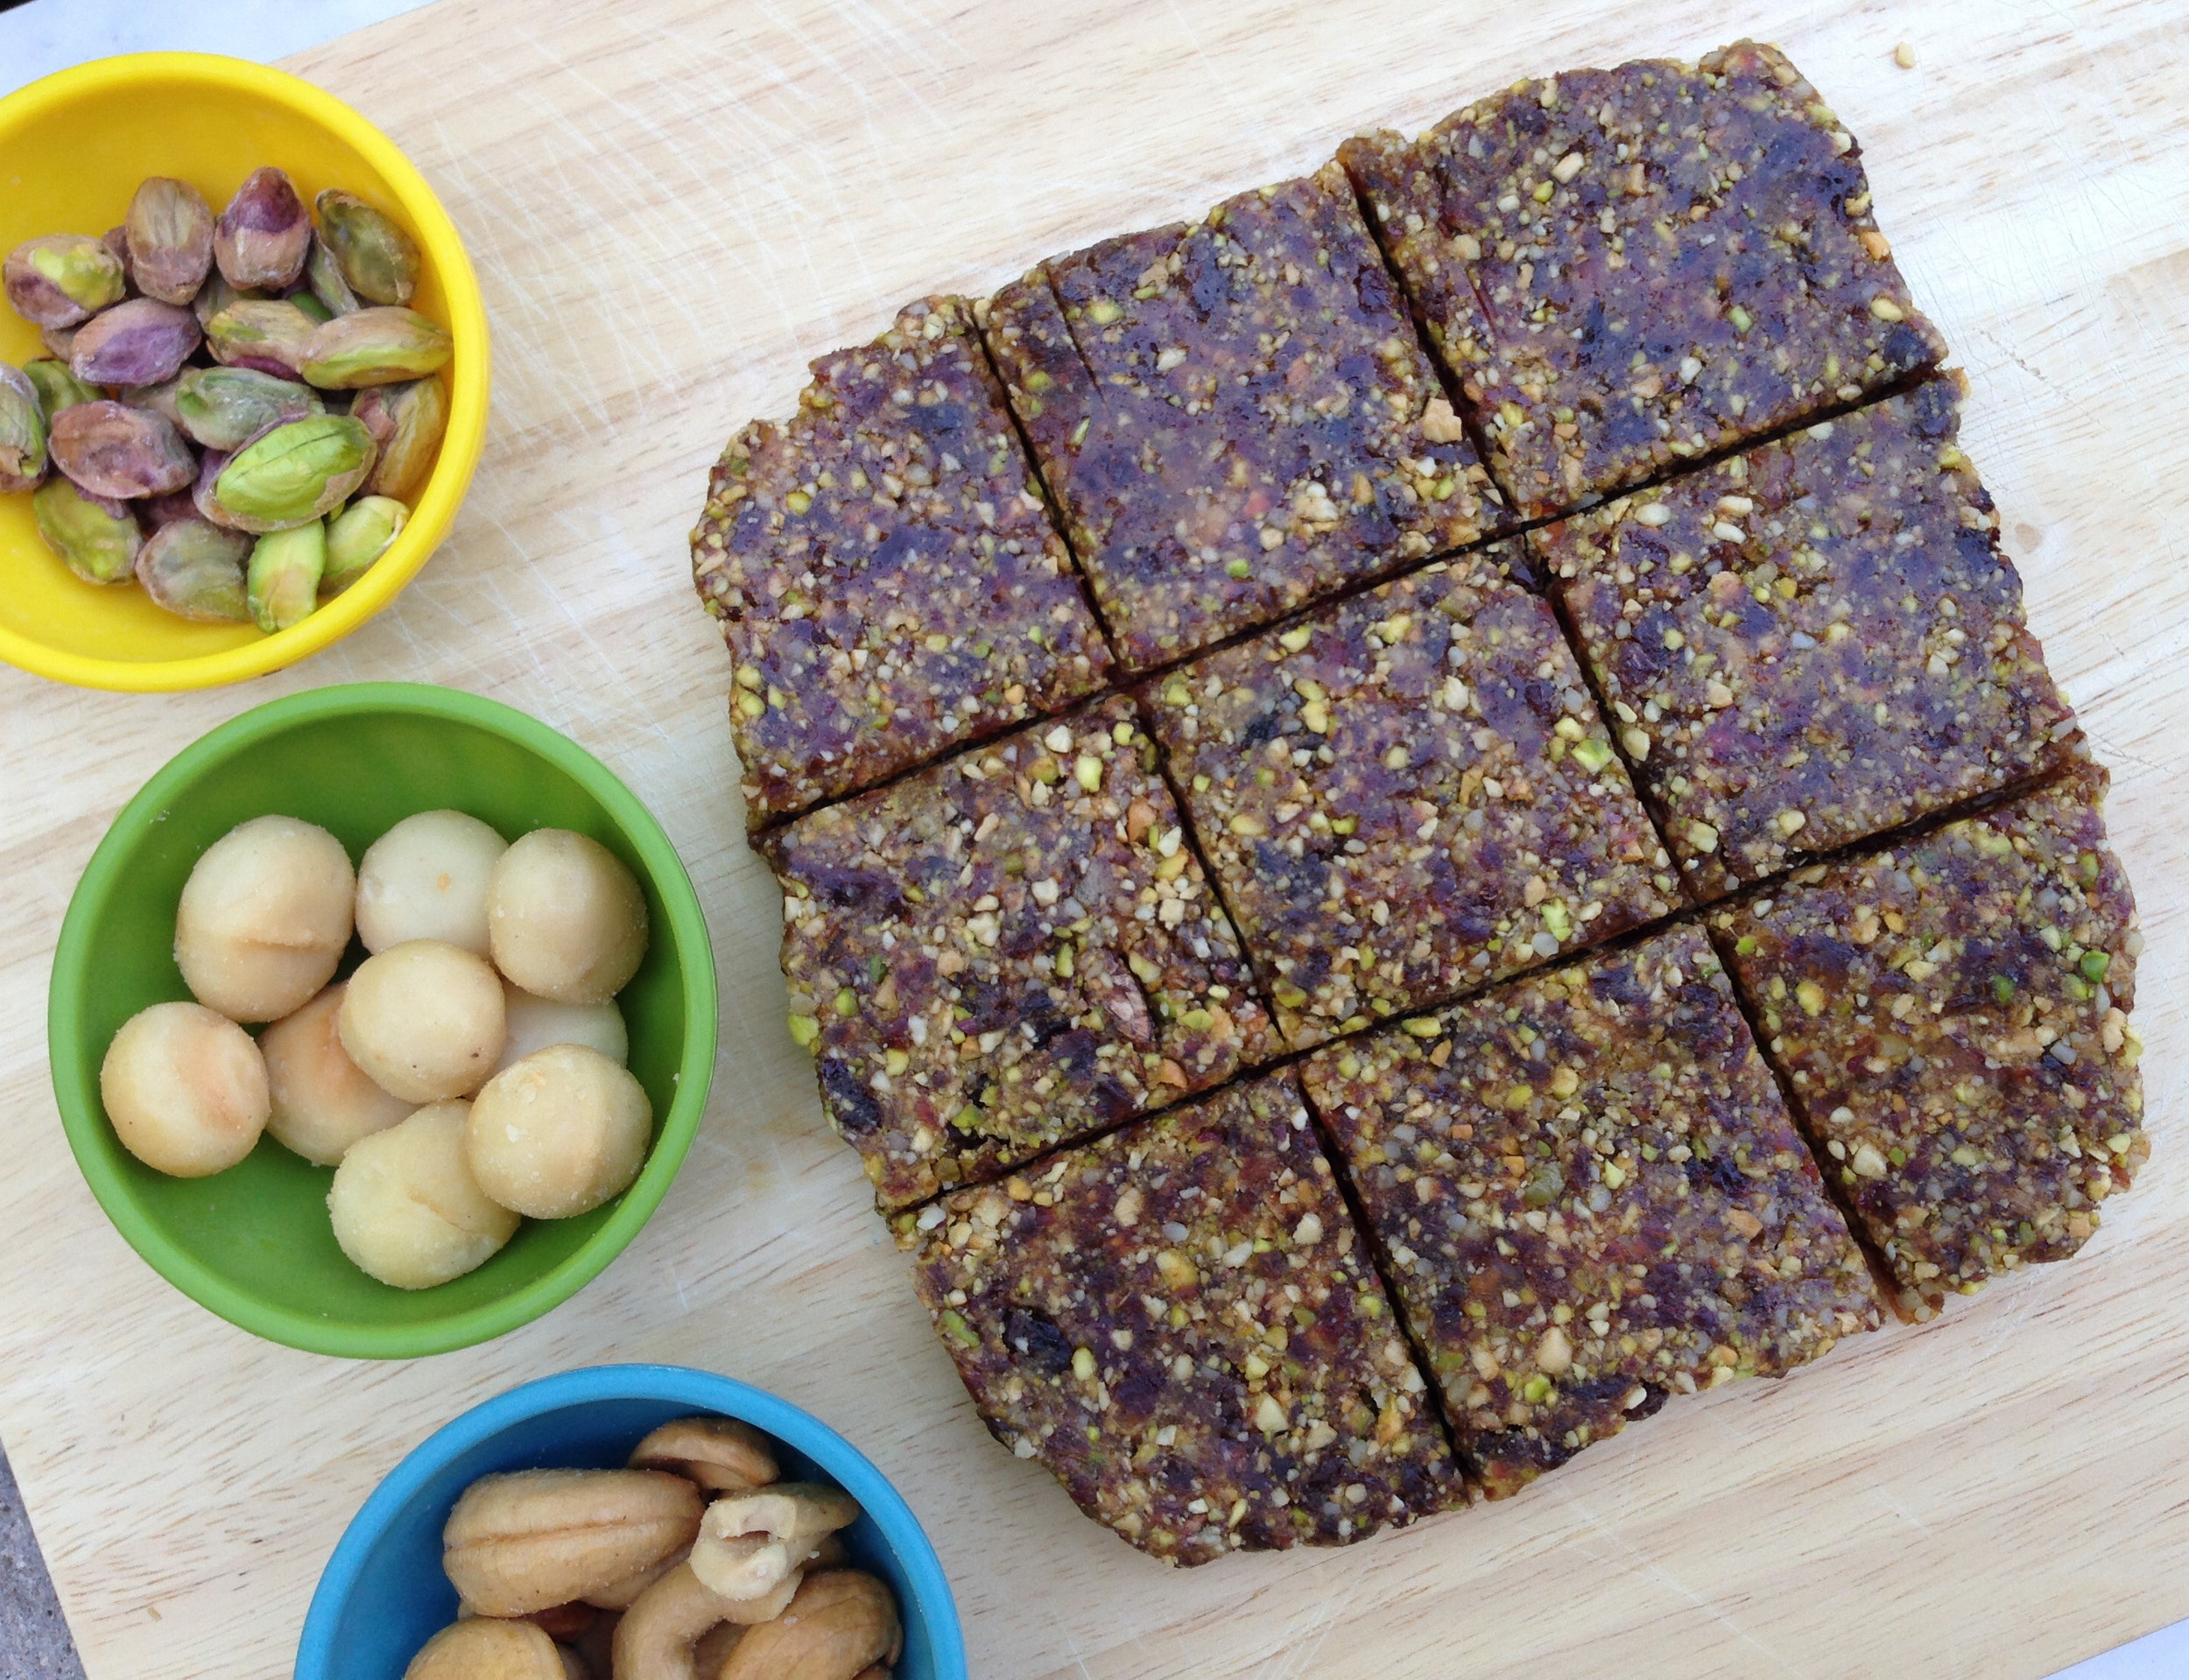 Nutty Date bar filled with dates, pistachios, Macadamia nuts, and cashews